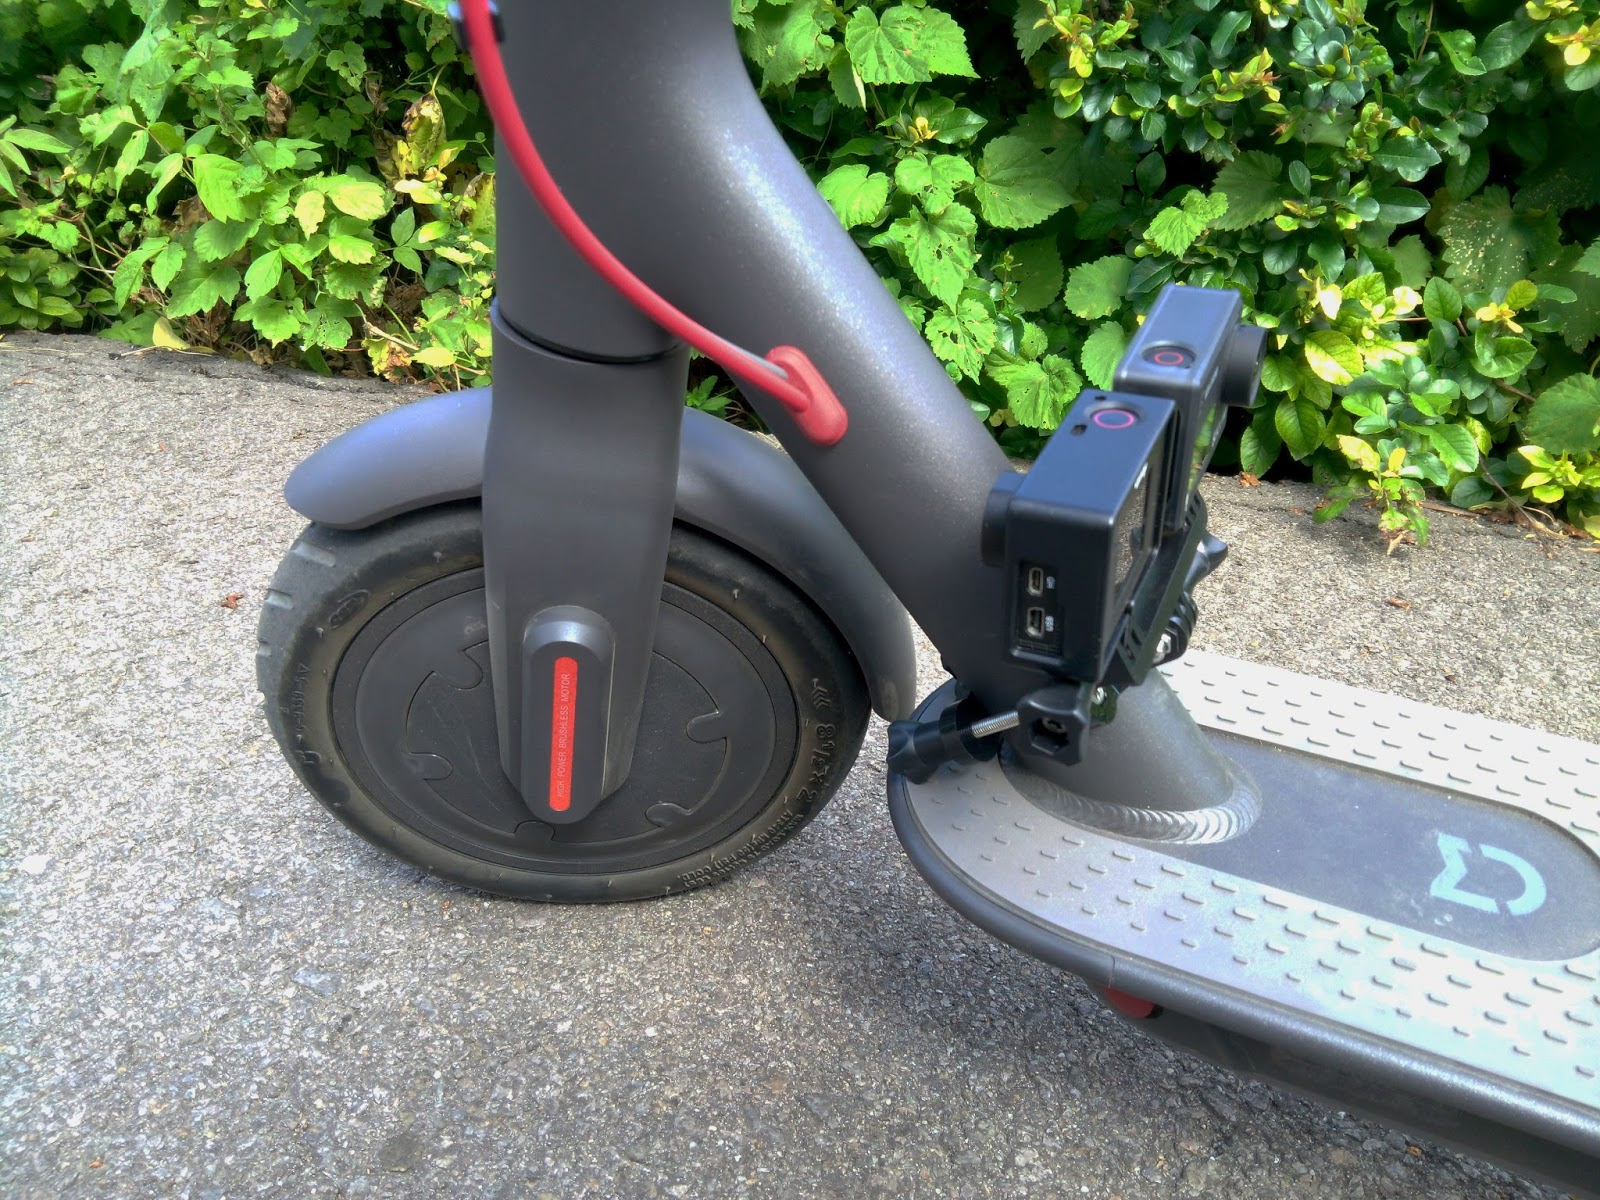 Xiaomi M365 Mijia Electric Scooter Review Techtronic9000 Typical Power Control Wiring Because The Has Ip54 Waterproof Rating It Can Function When Its Raining But With Only One Constriction And That Is Water Level Should